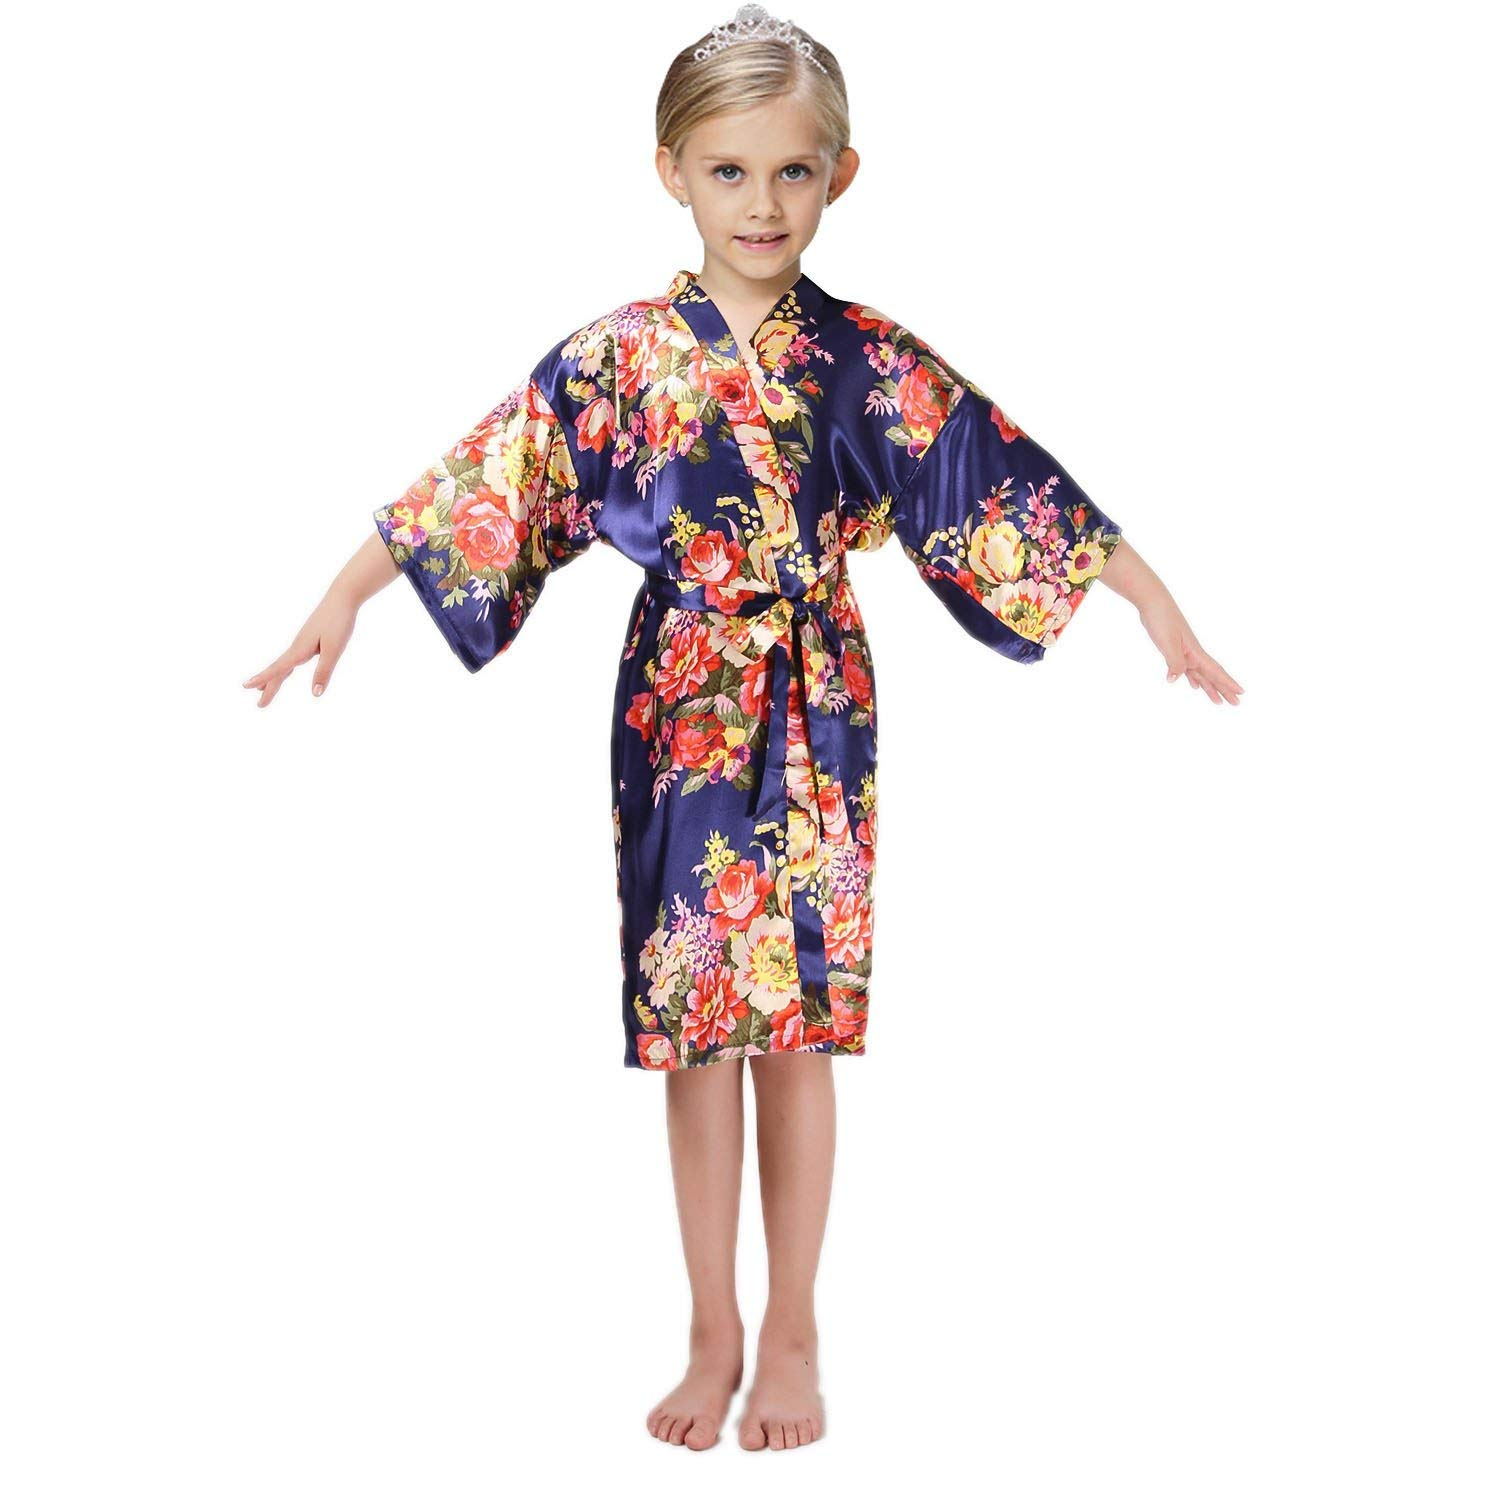 f7eb7d26b8c Get Quotations · FCTREE Girls  Satin Kimono Robe Girls  Nightgown For Spa  Party Wedding Birthday